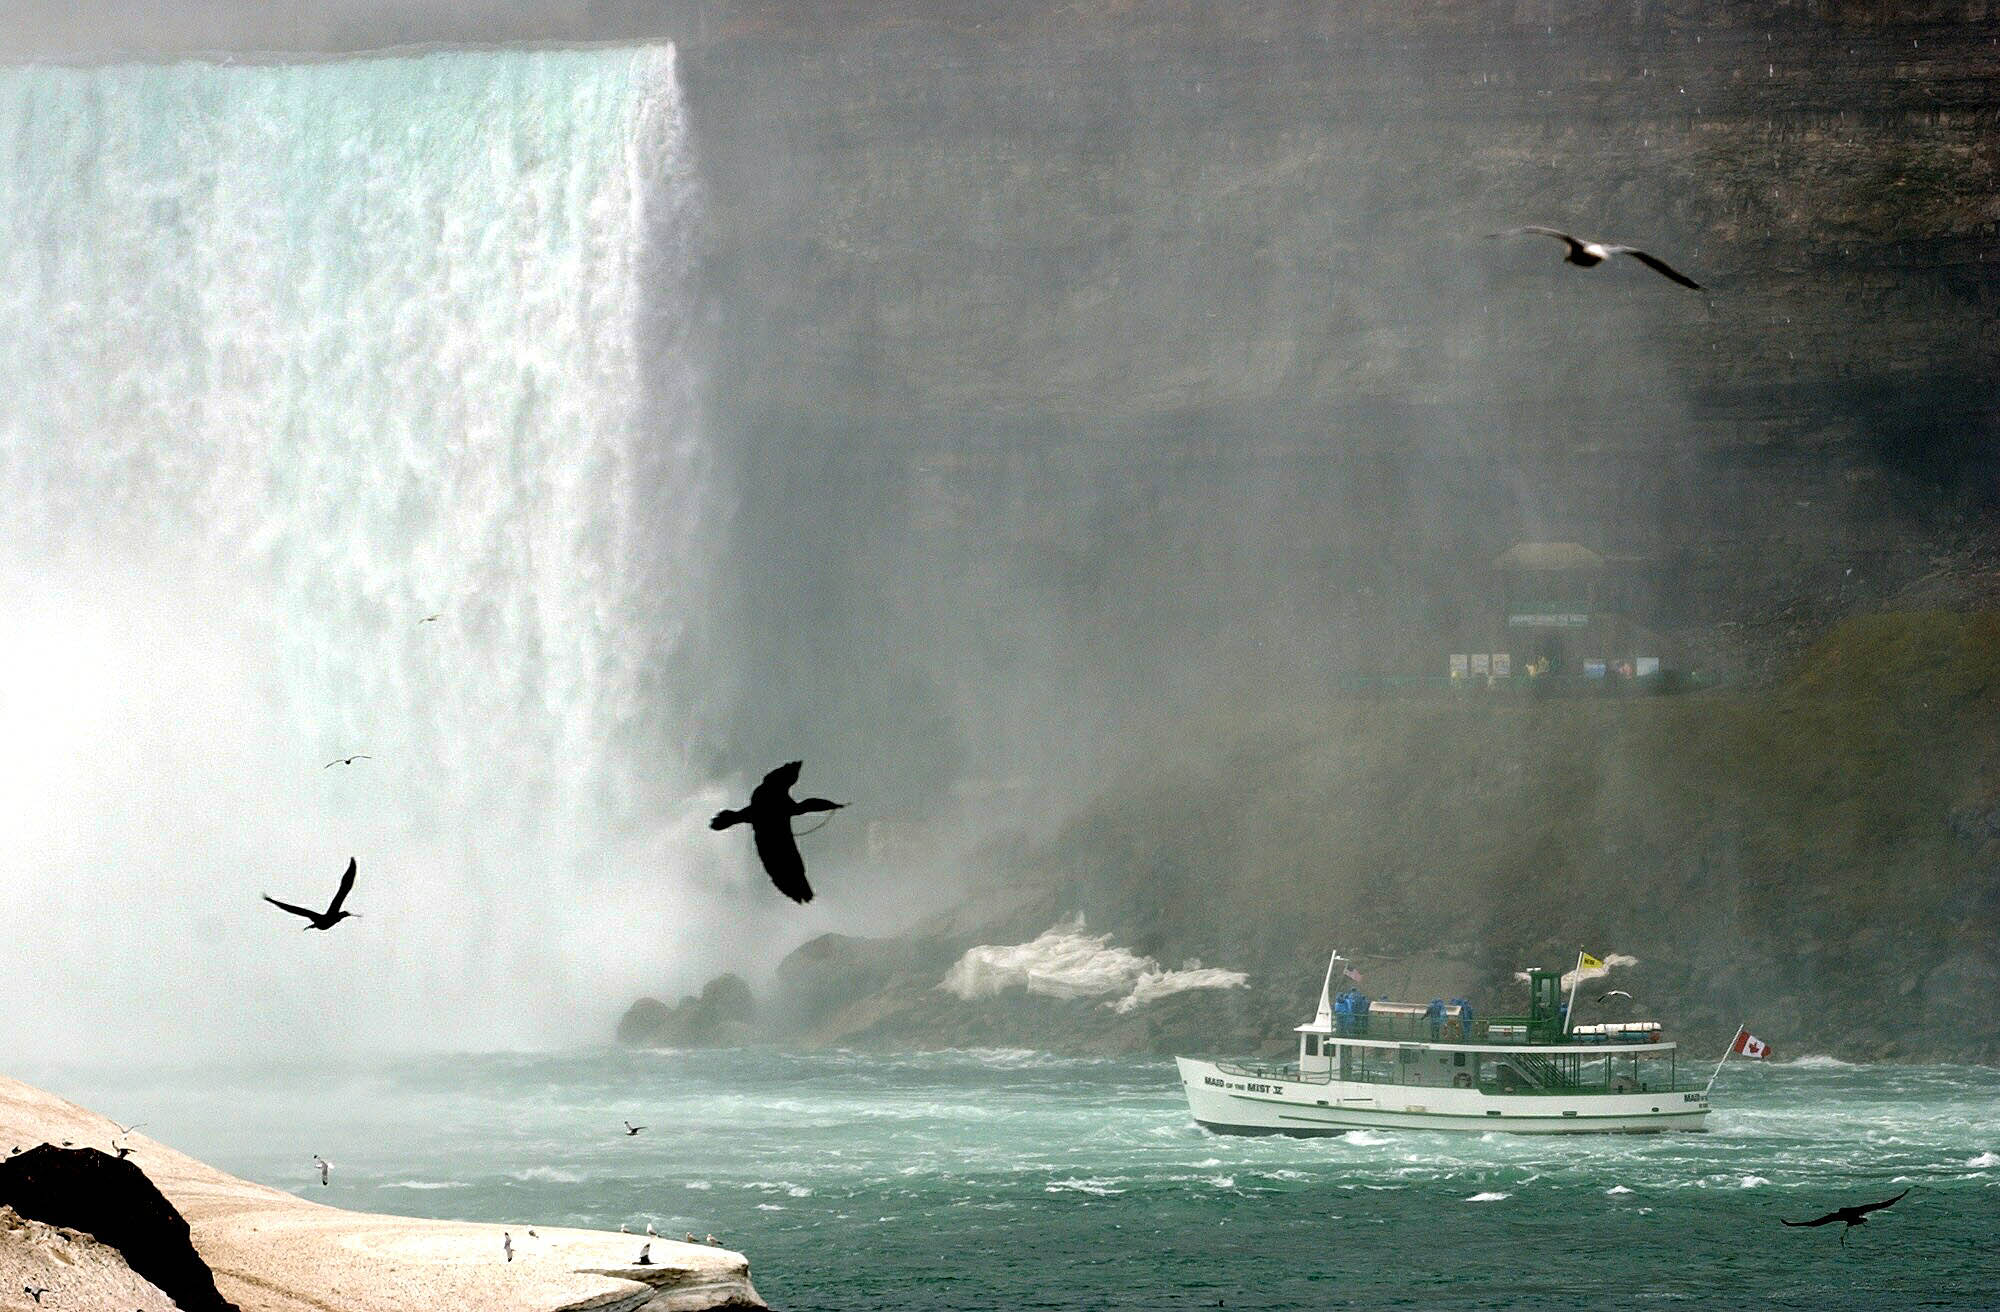 Maid of the Mist, Hornblower wont begin boat rides until ice clears from river